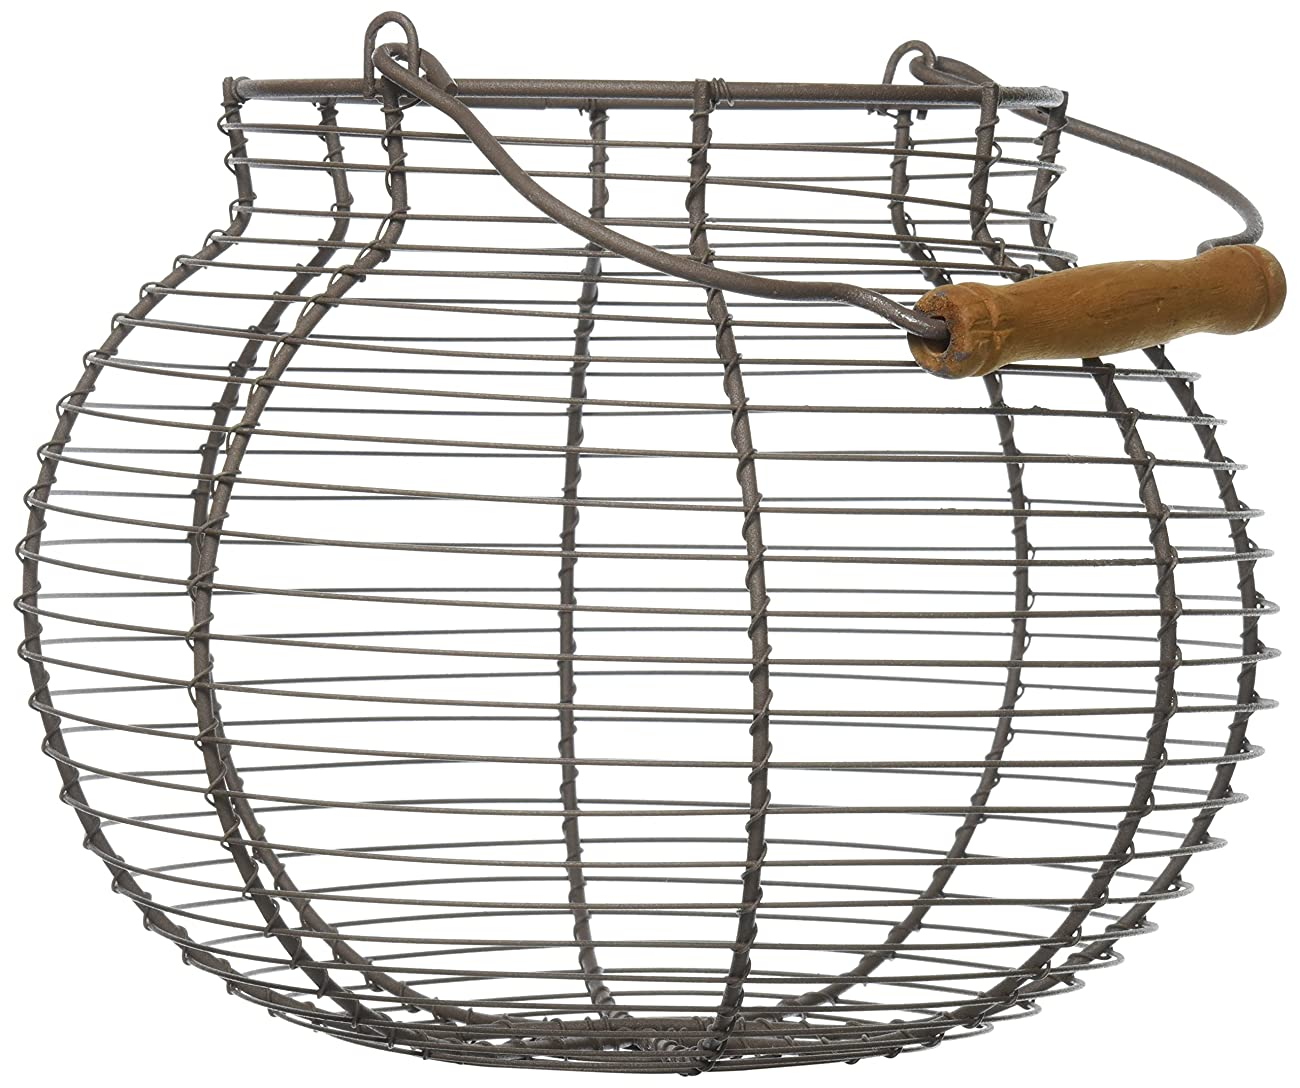 Your Hearts Delight Round Wooden Handle Wire Basket, 10-Inch 0